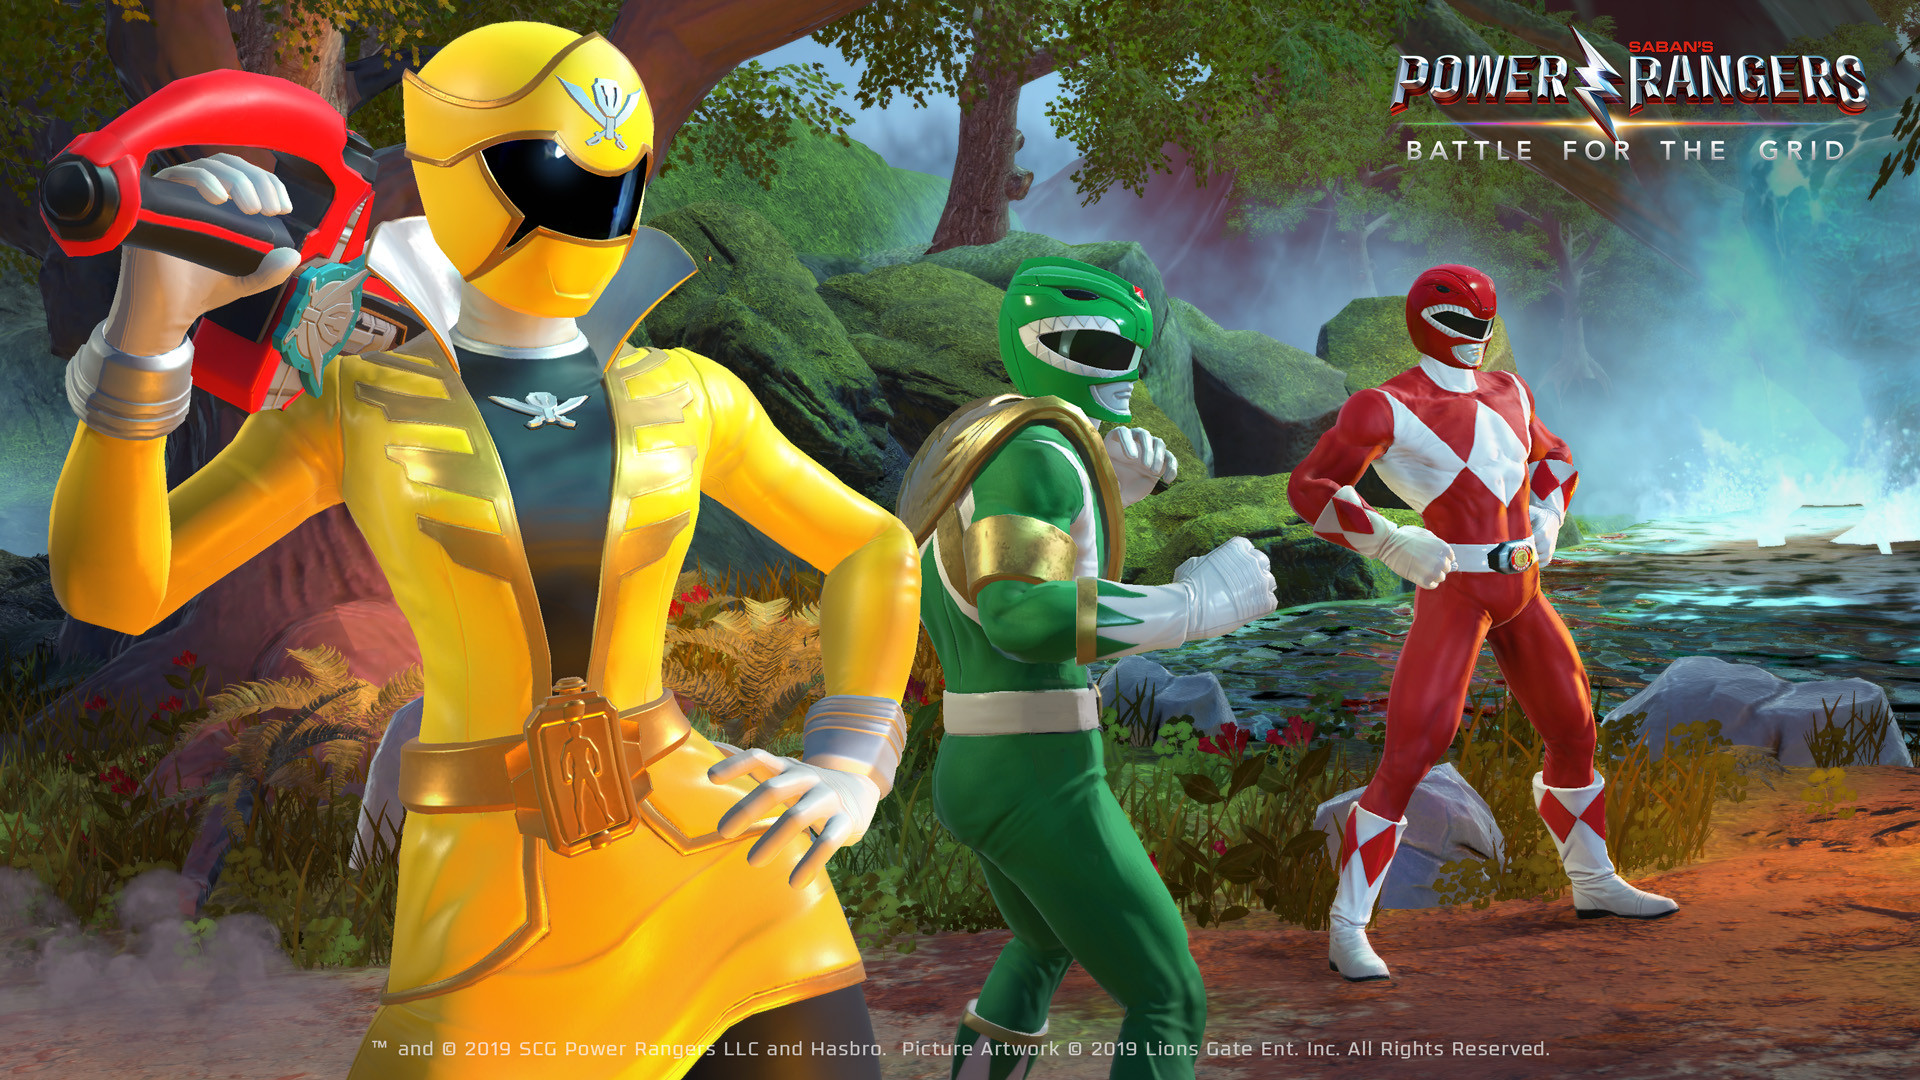 Click image for larger version  Name:	Power Rangers Battle for the Grid Promo Screen 5.jpg Views:	1 Size:	756.1 KB ID:	3492575